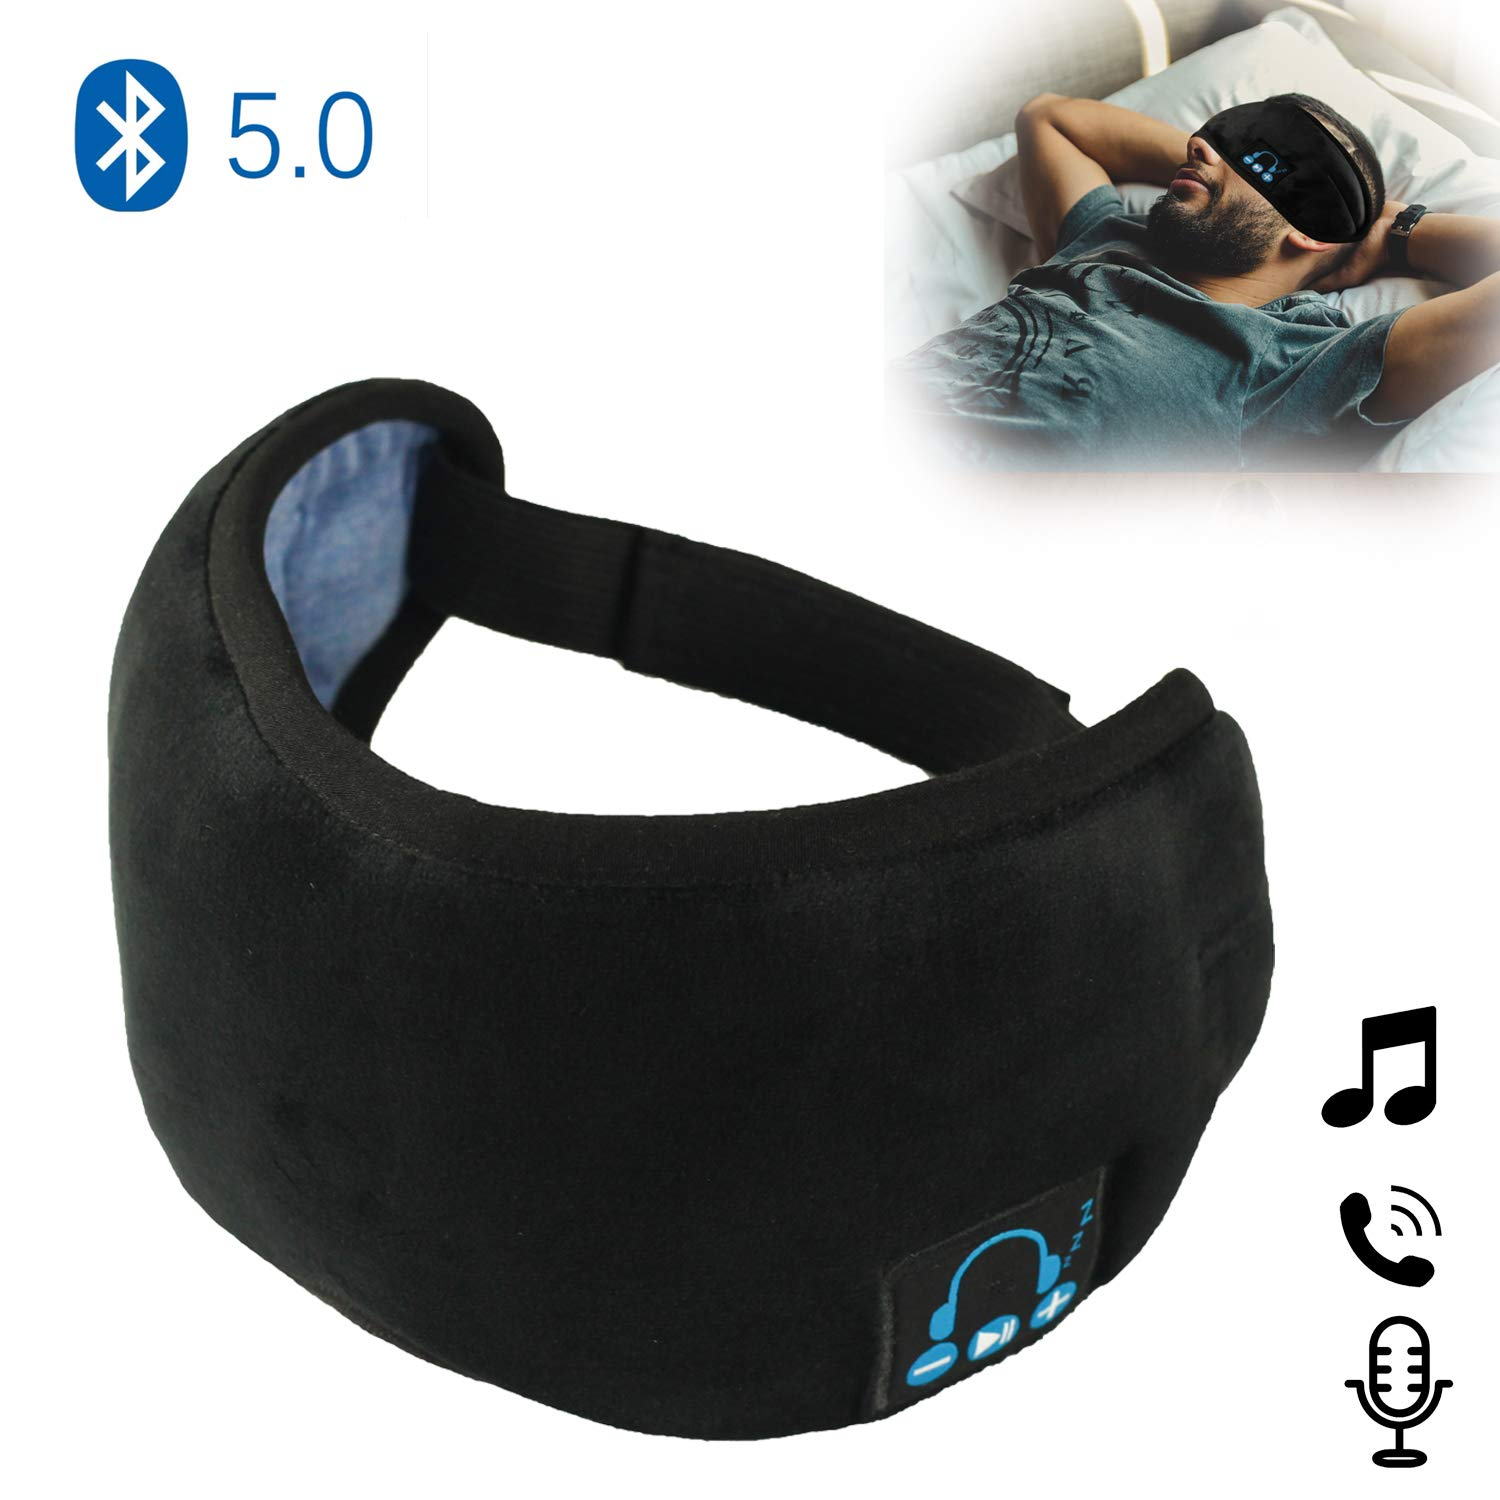 Sleep Headphones, Upgraded Eye Masks Bluetooth 5.0 Wireless Music Travel Sleeping Headset Built-in Speakers Microphone Handsfree